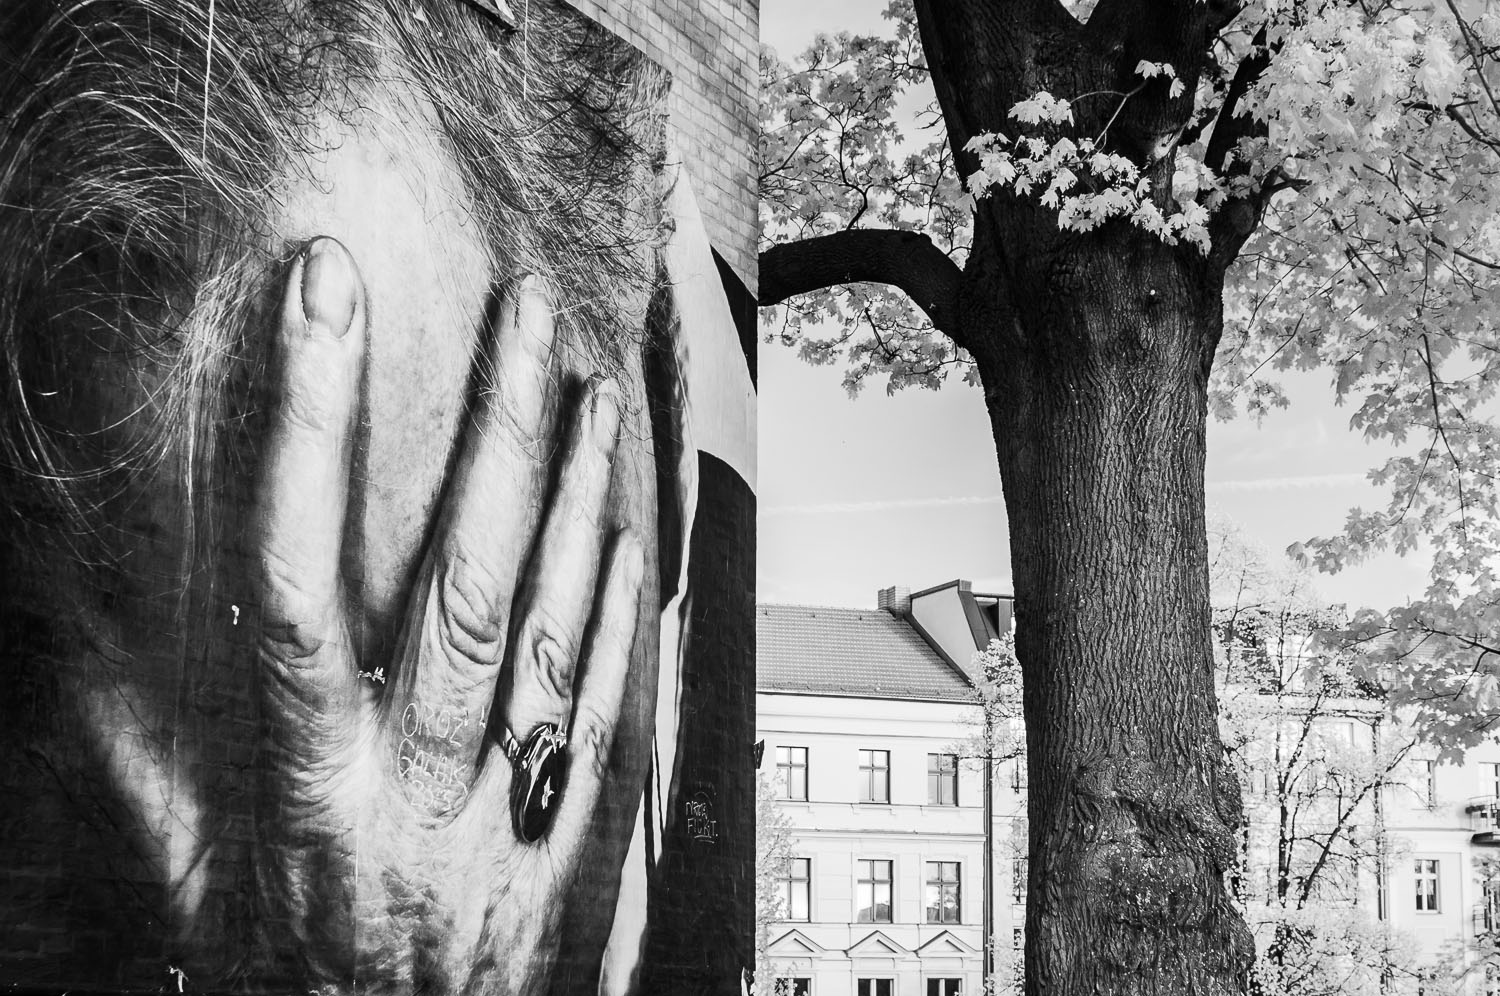 """What Are You Doing?""  Wrinkles in the City - Berlin    © Dustin Main 2013"